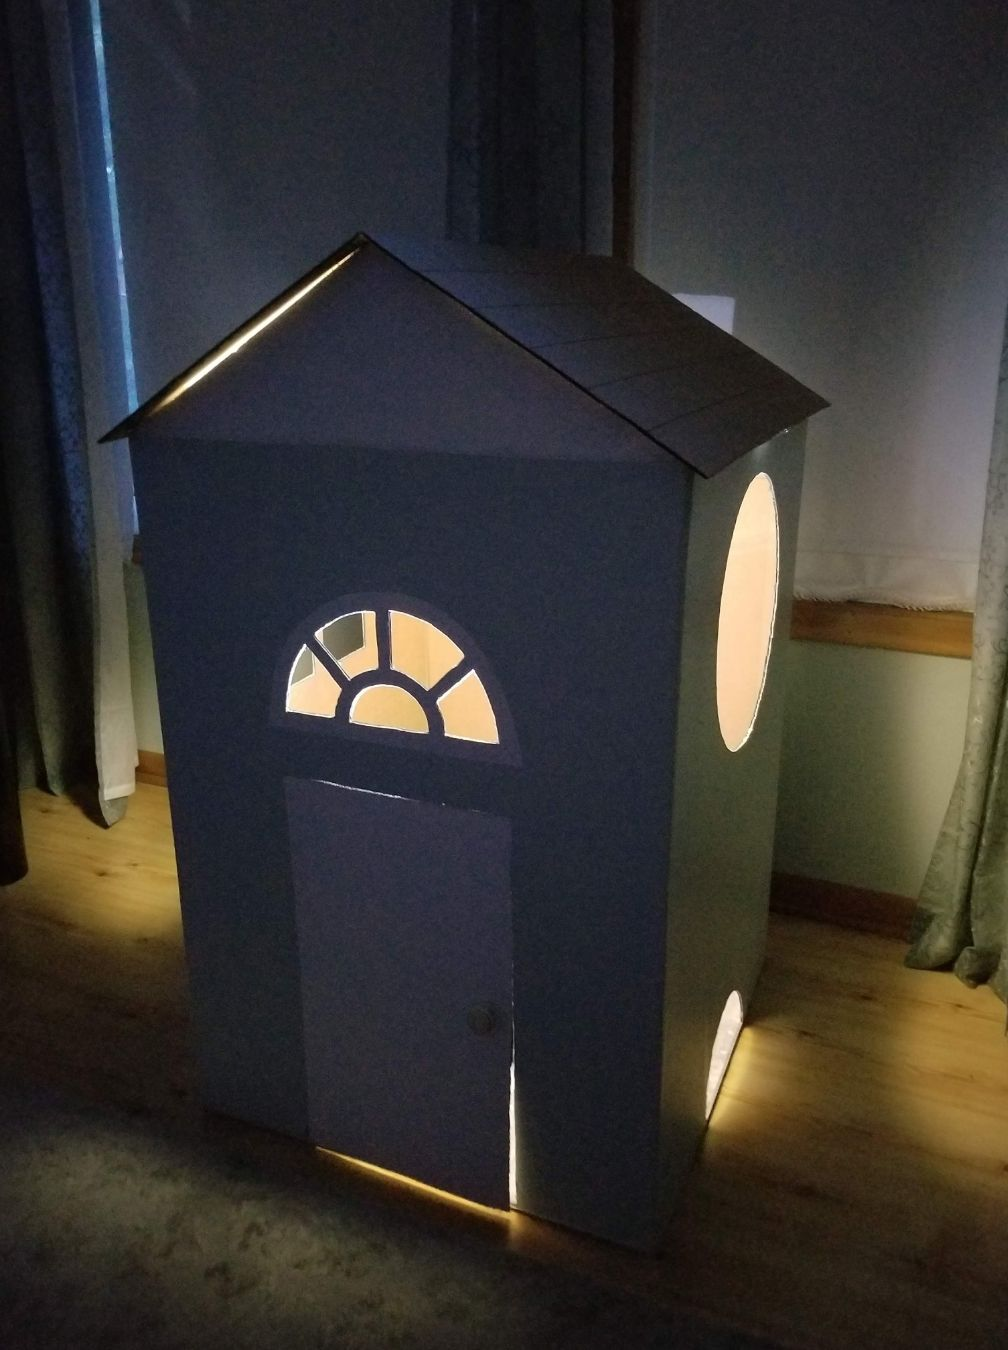 Kids like cardboard playhouses